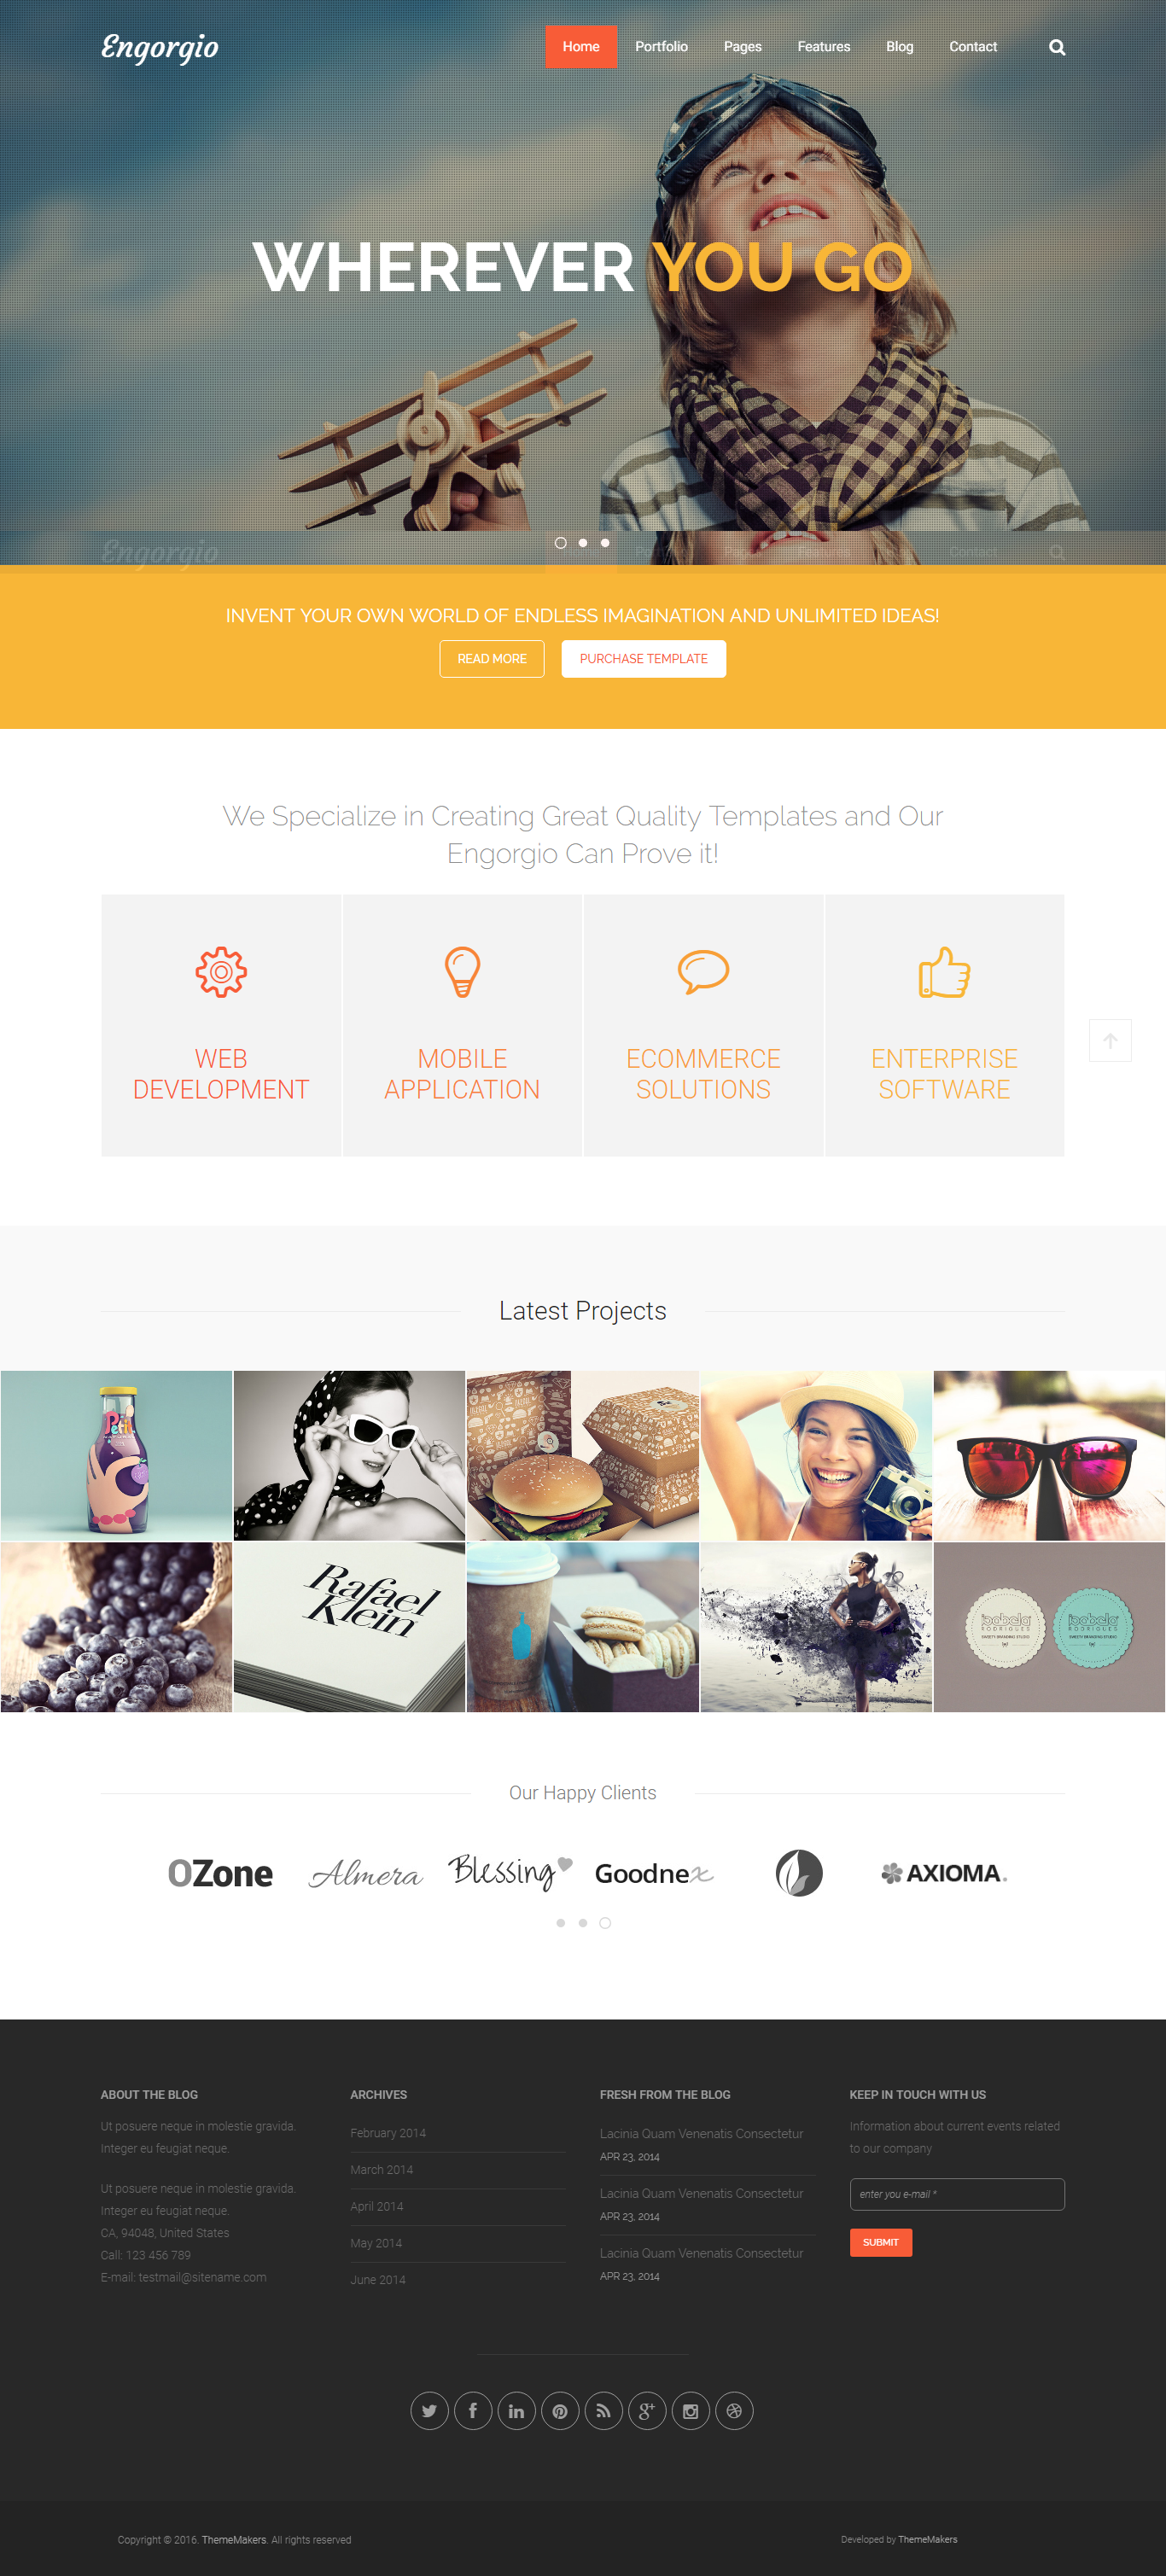 Engorgio Web Design Agency Responsive Site Template Agency Business Clean Creative Gallery Masonry Mod Agency Website Design Template Site Web Design